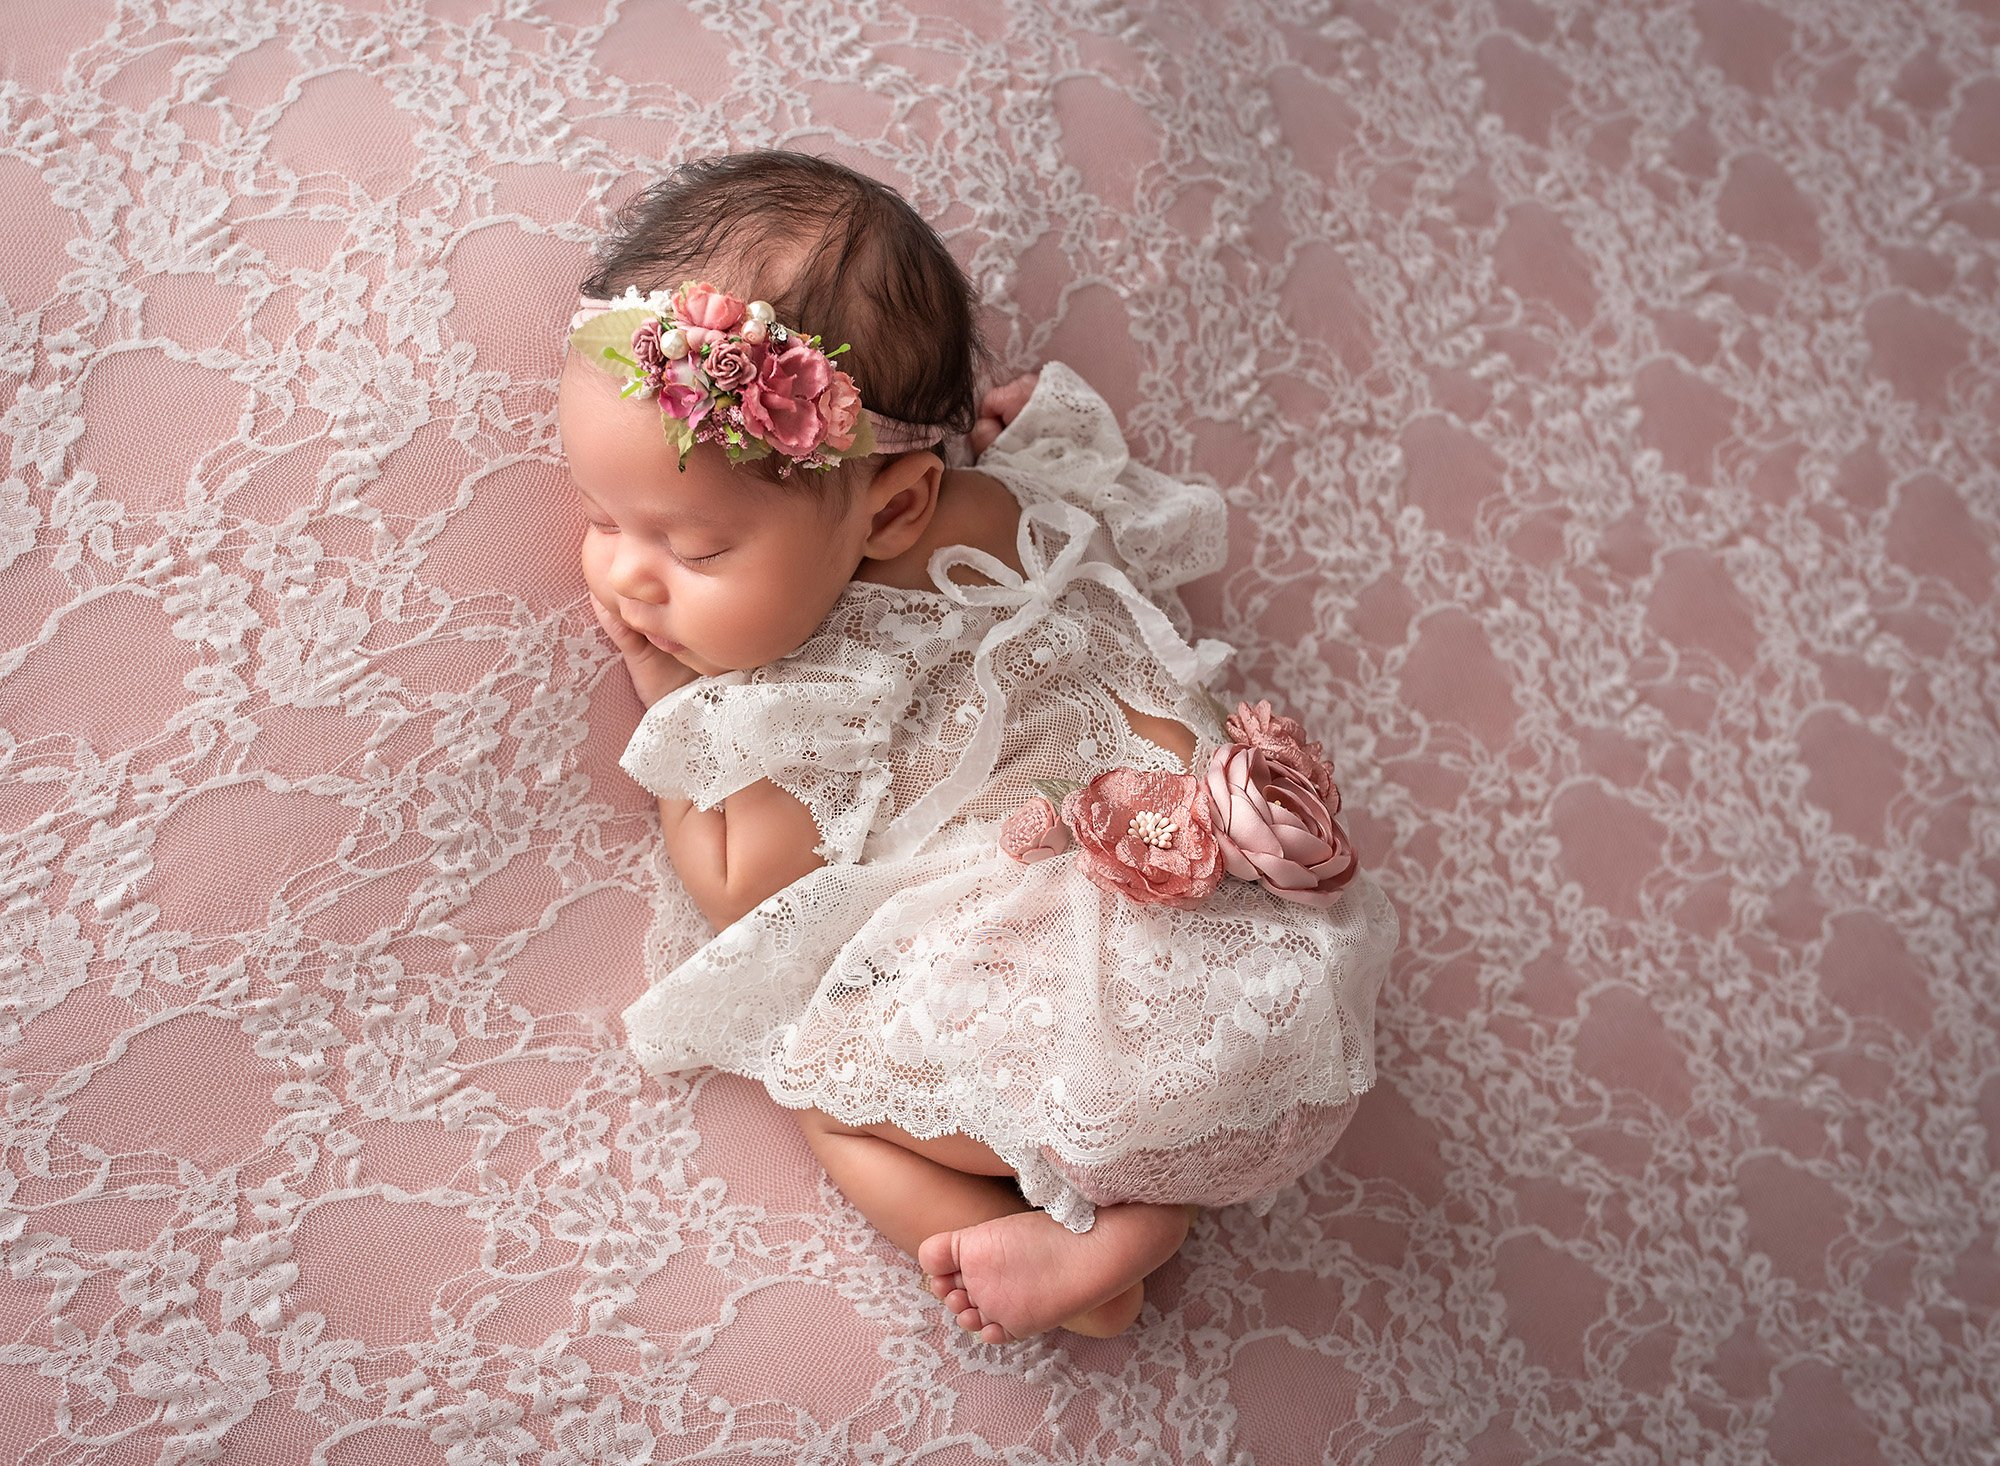 girly girl newborn photos newborn baby girl laying on stomach on top of pink lace wearing lace dress and pink floral headband